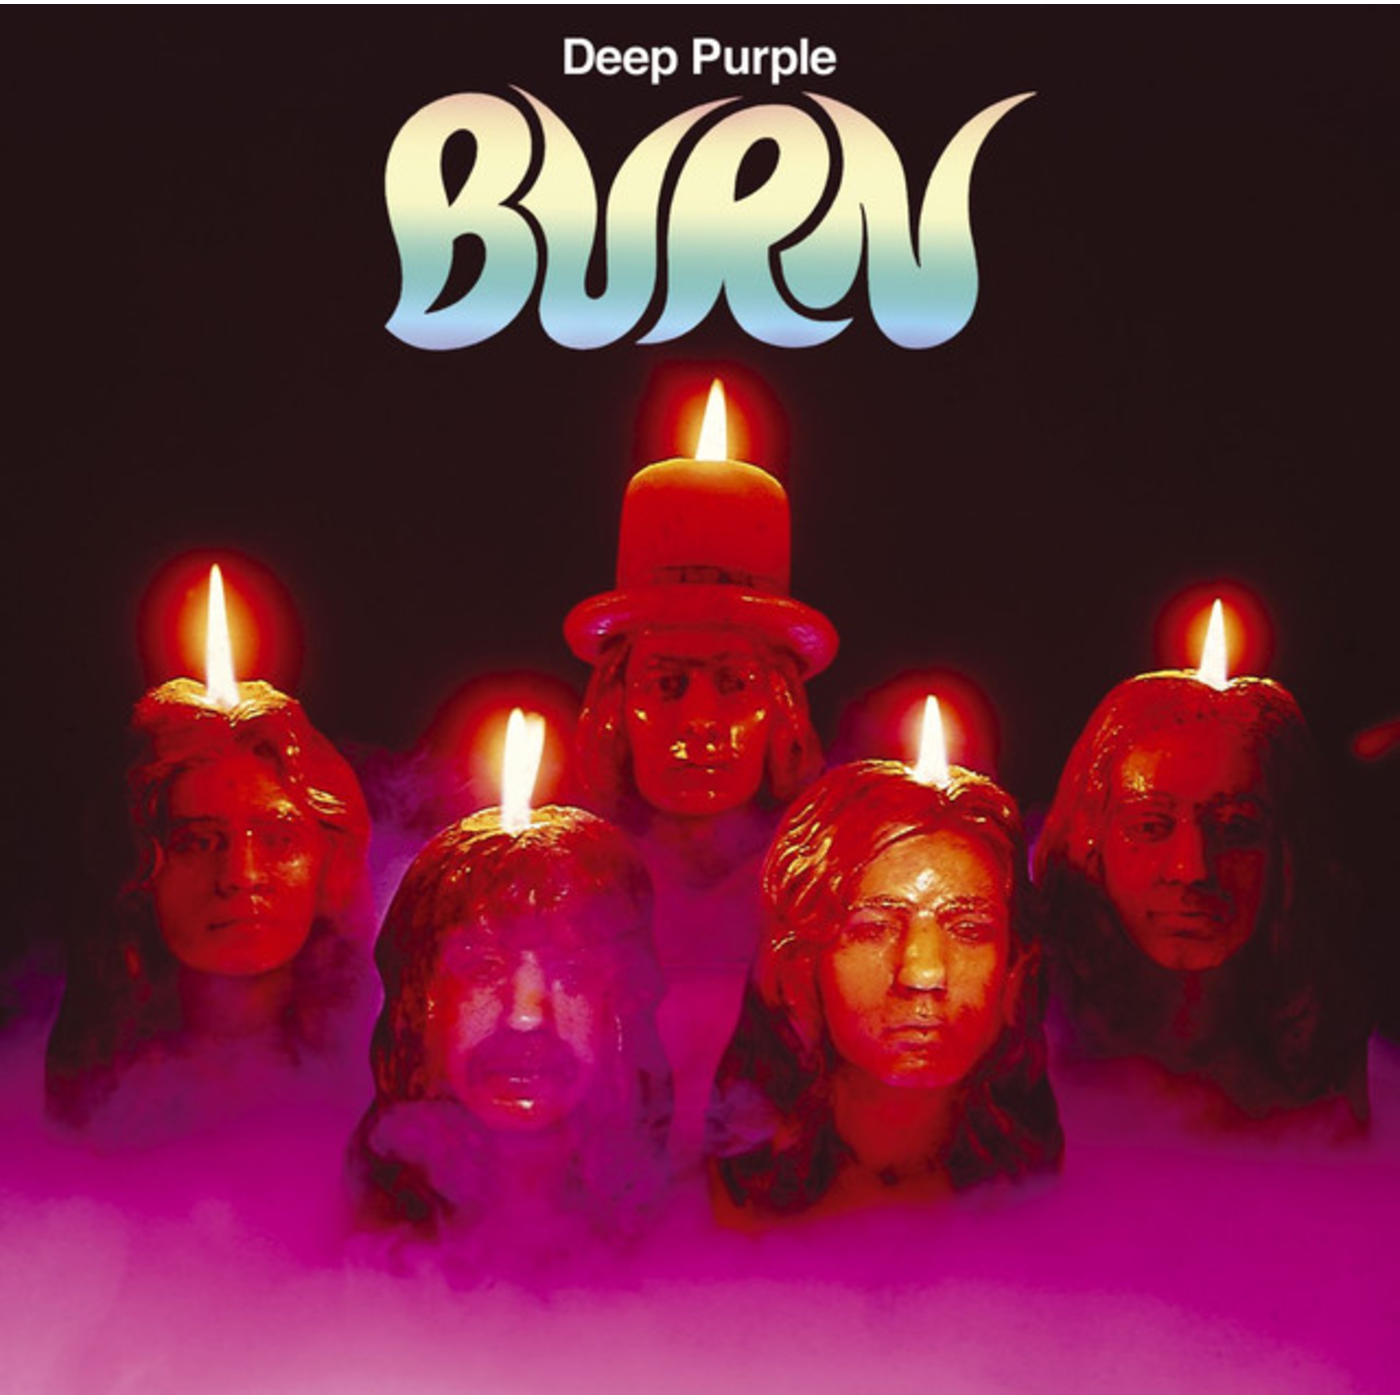 Deep Purple on ABC